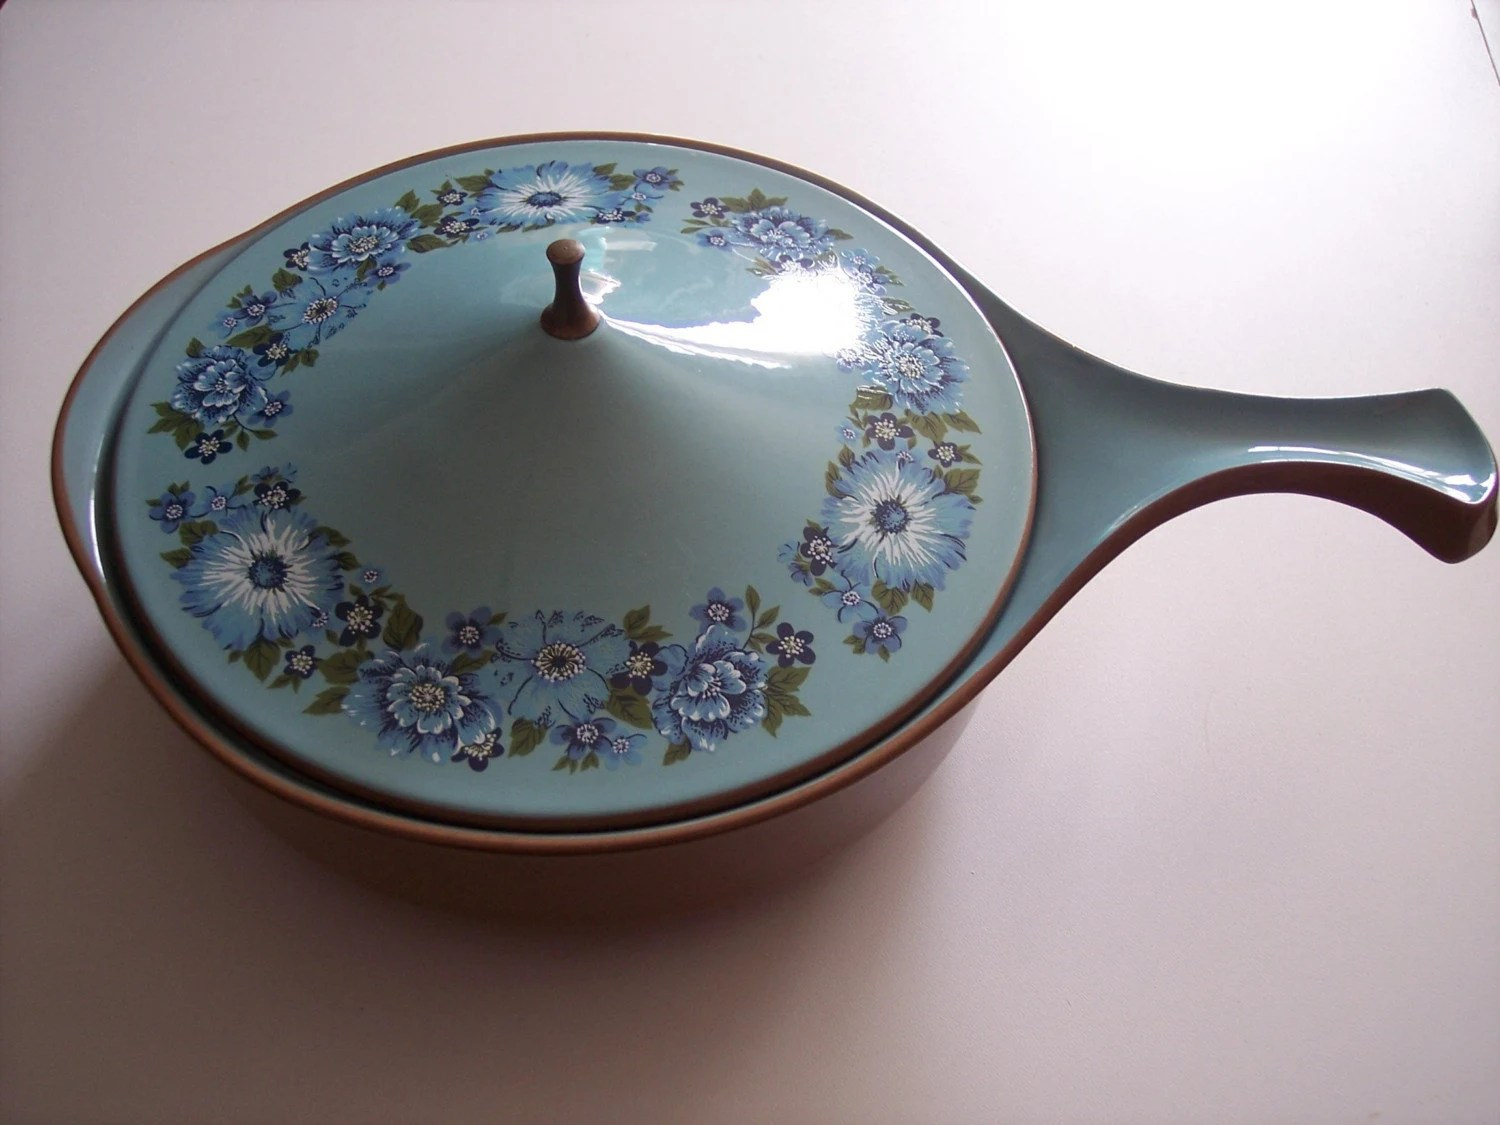 Azura 2.5 Quart Casserole c1969 Taylor Smith and Taylor Genuine Ceramic Ironware